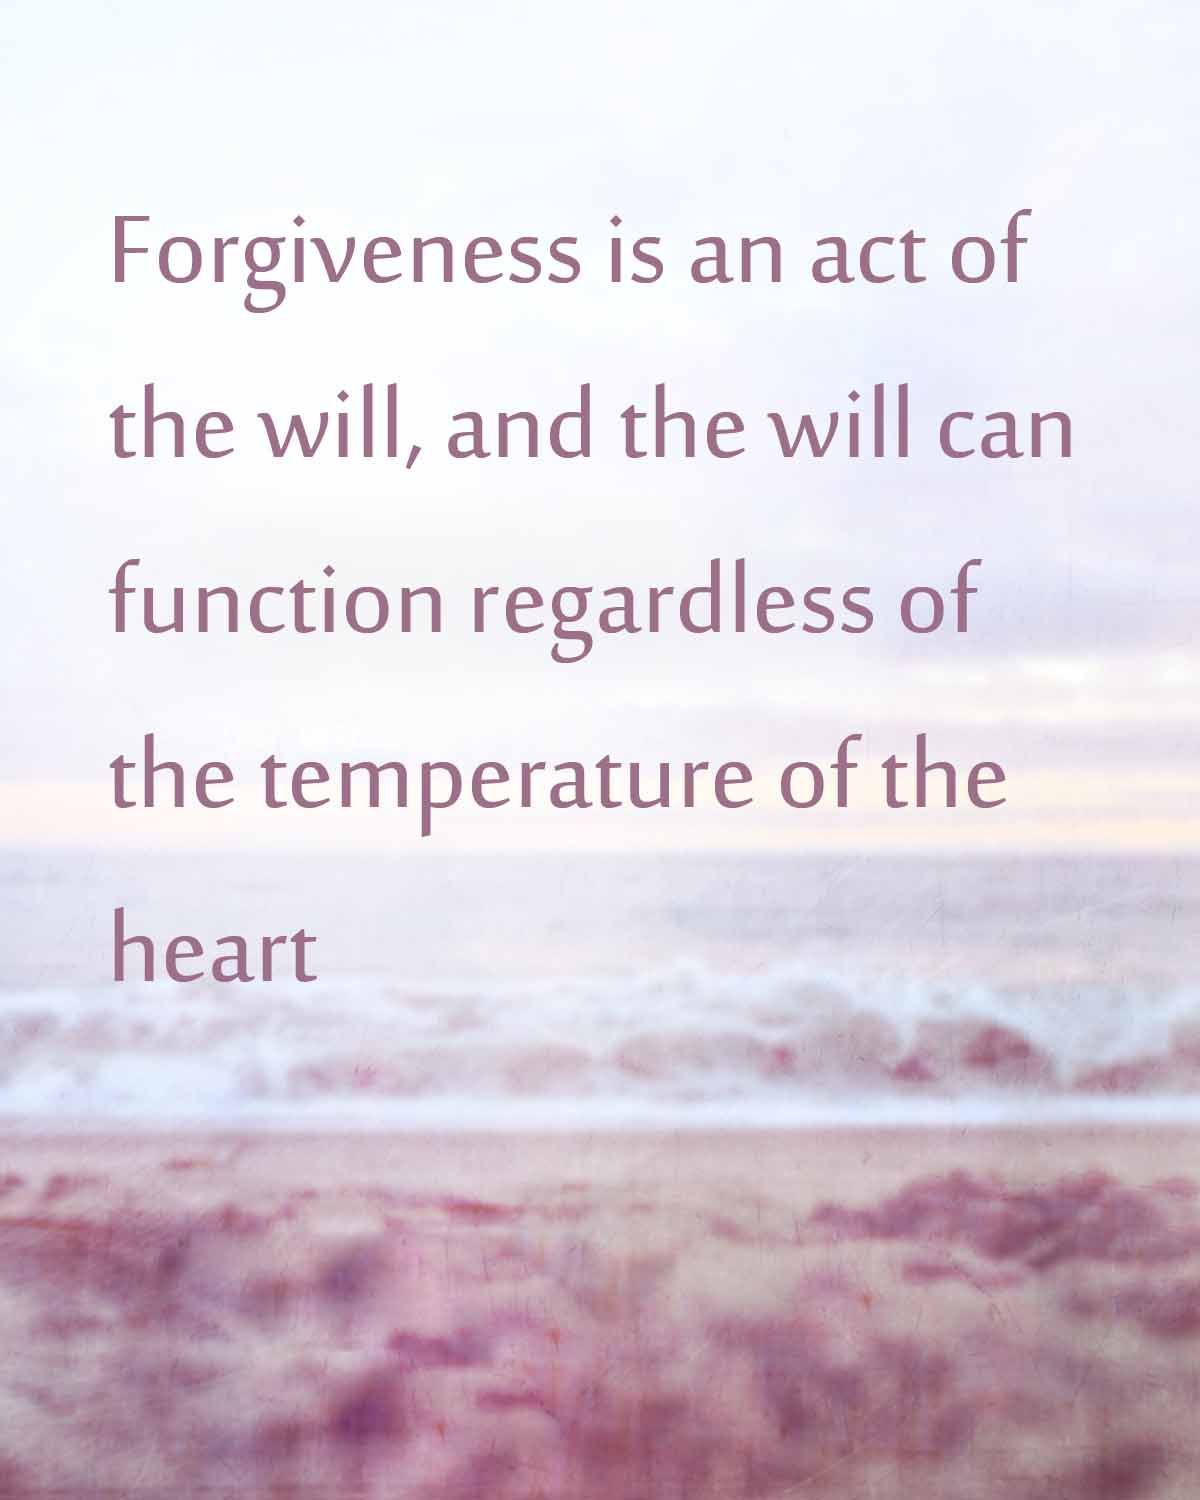 Looking for Best Forgiveness Quotes Here are 10 Inspirational Quotes on Forgiveness